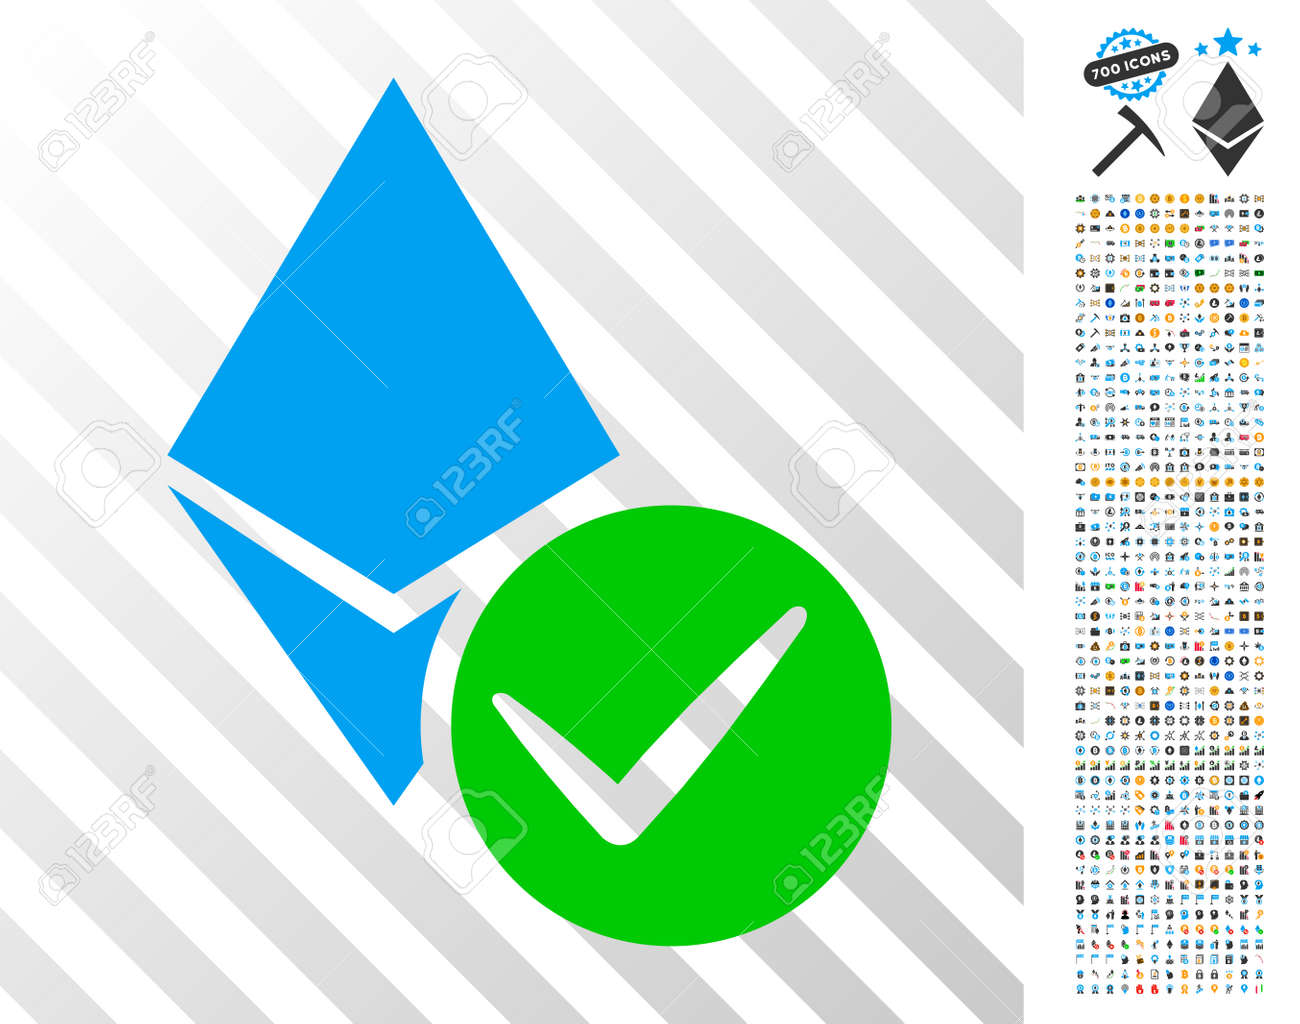 Valid Ethereum Crystal icon with 700 bonus bitcoin mining and blockchain pictures. Vector illustration style is flat iconic symbols designed for bitcoin websites. - 94073475